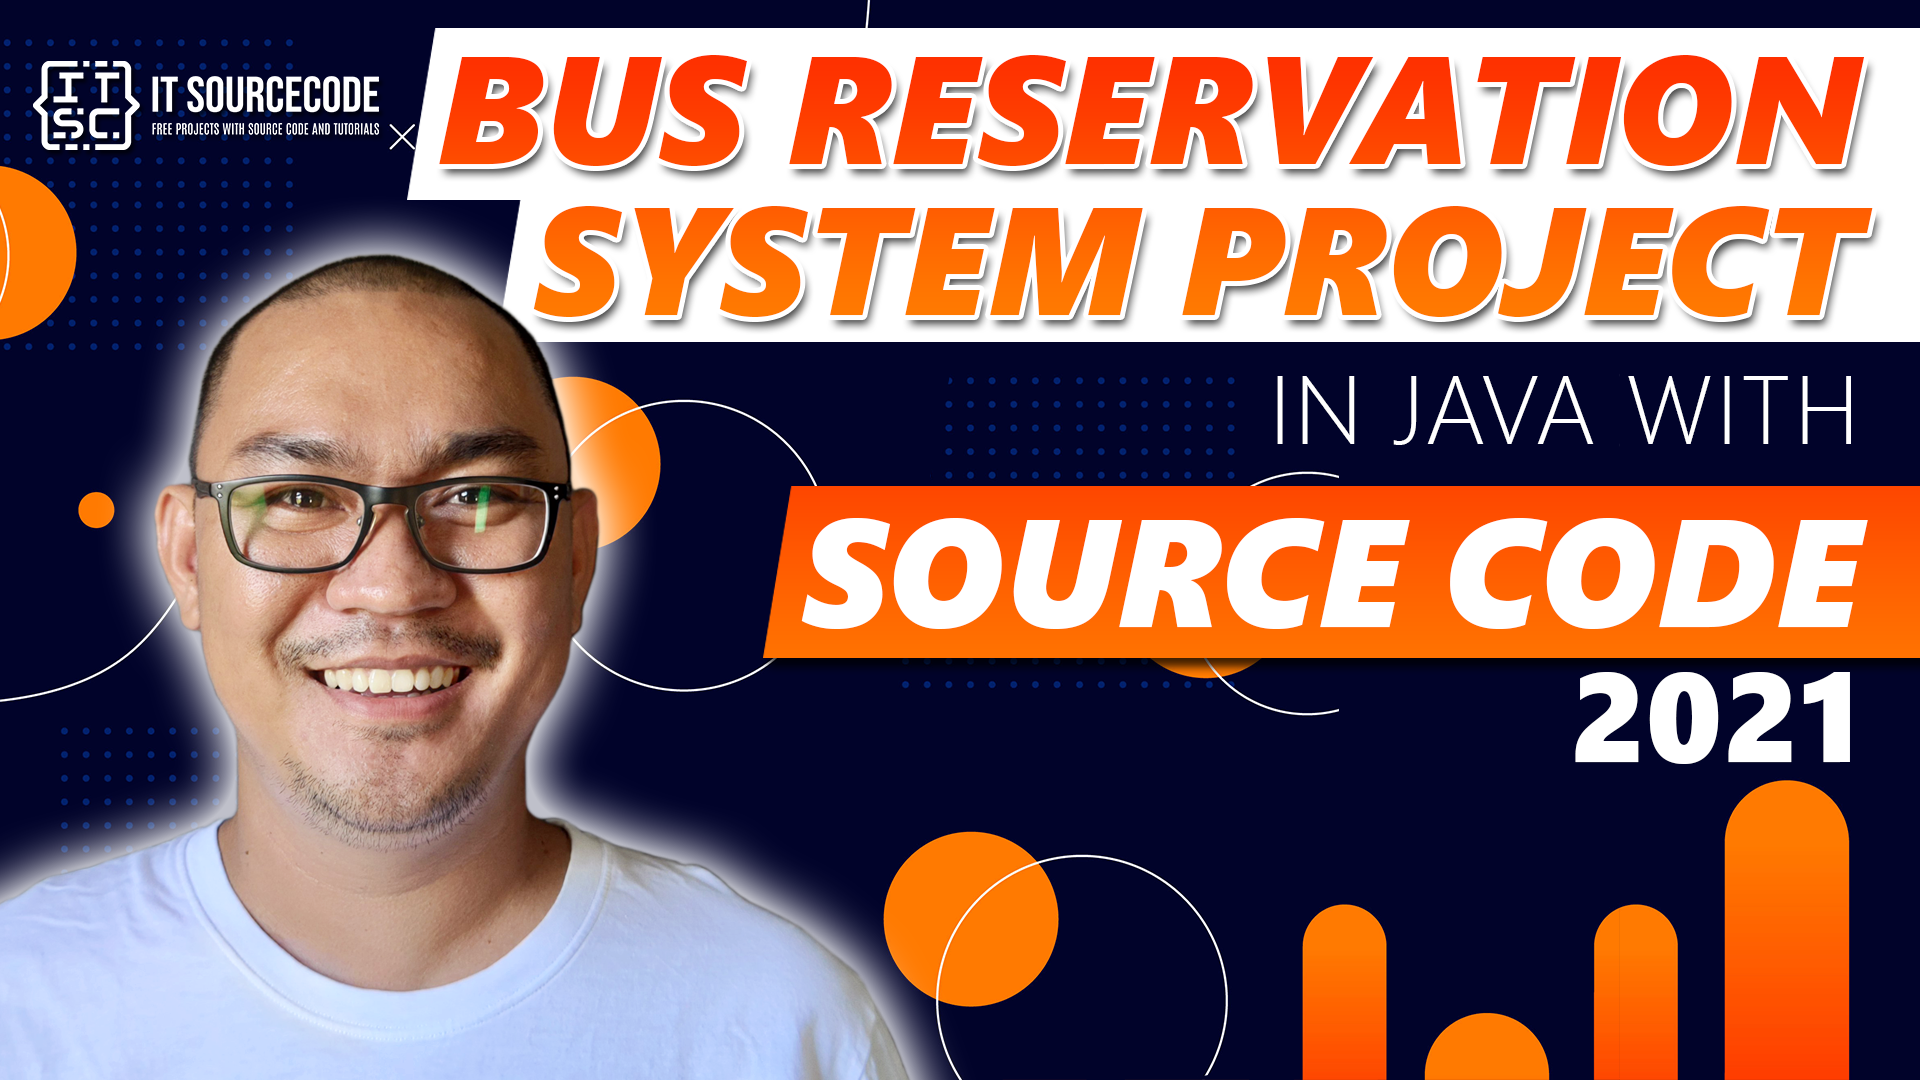 Bus Reservation System Project in Java